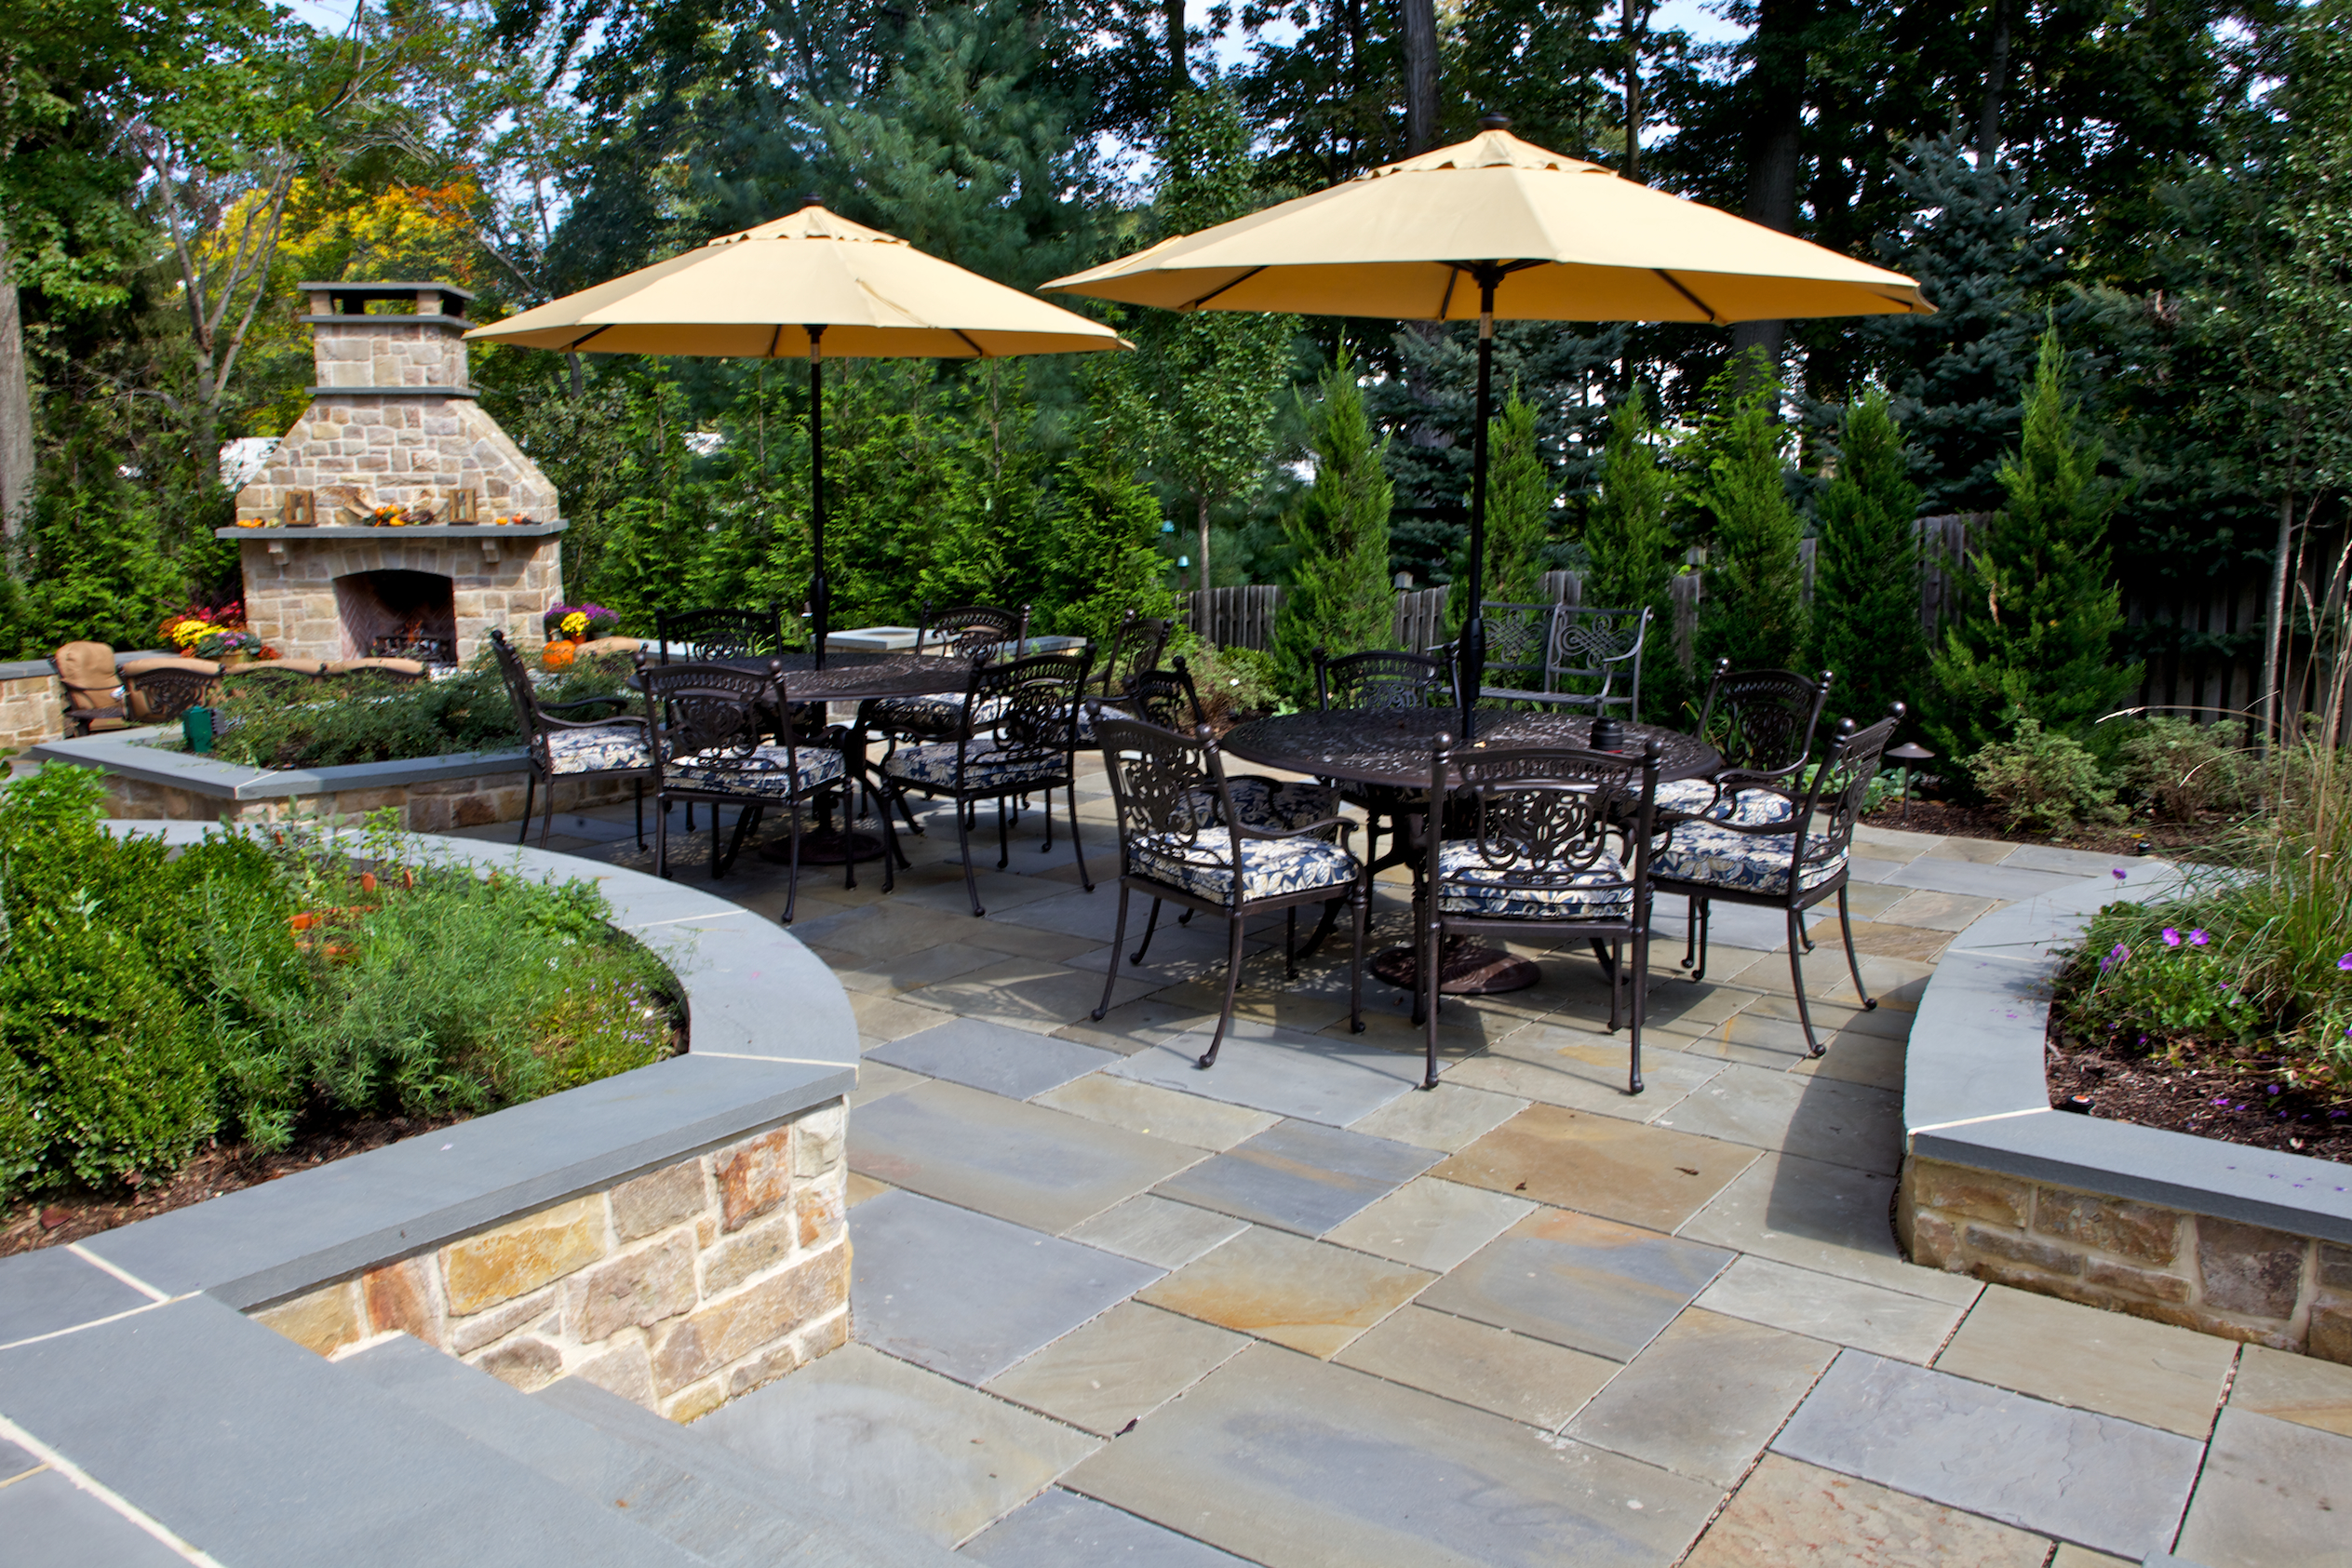 Terrific paver outdoor patio ideas with patio furniture for Garden patio designs